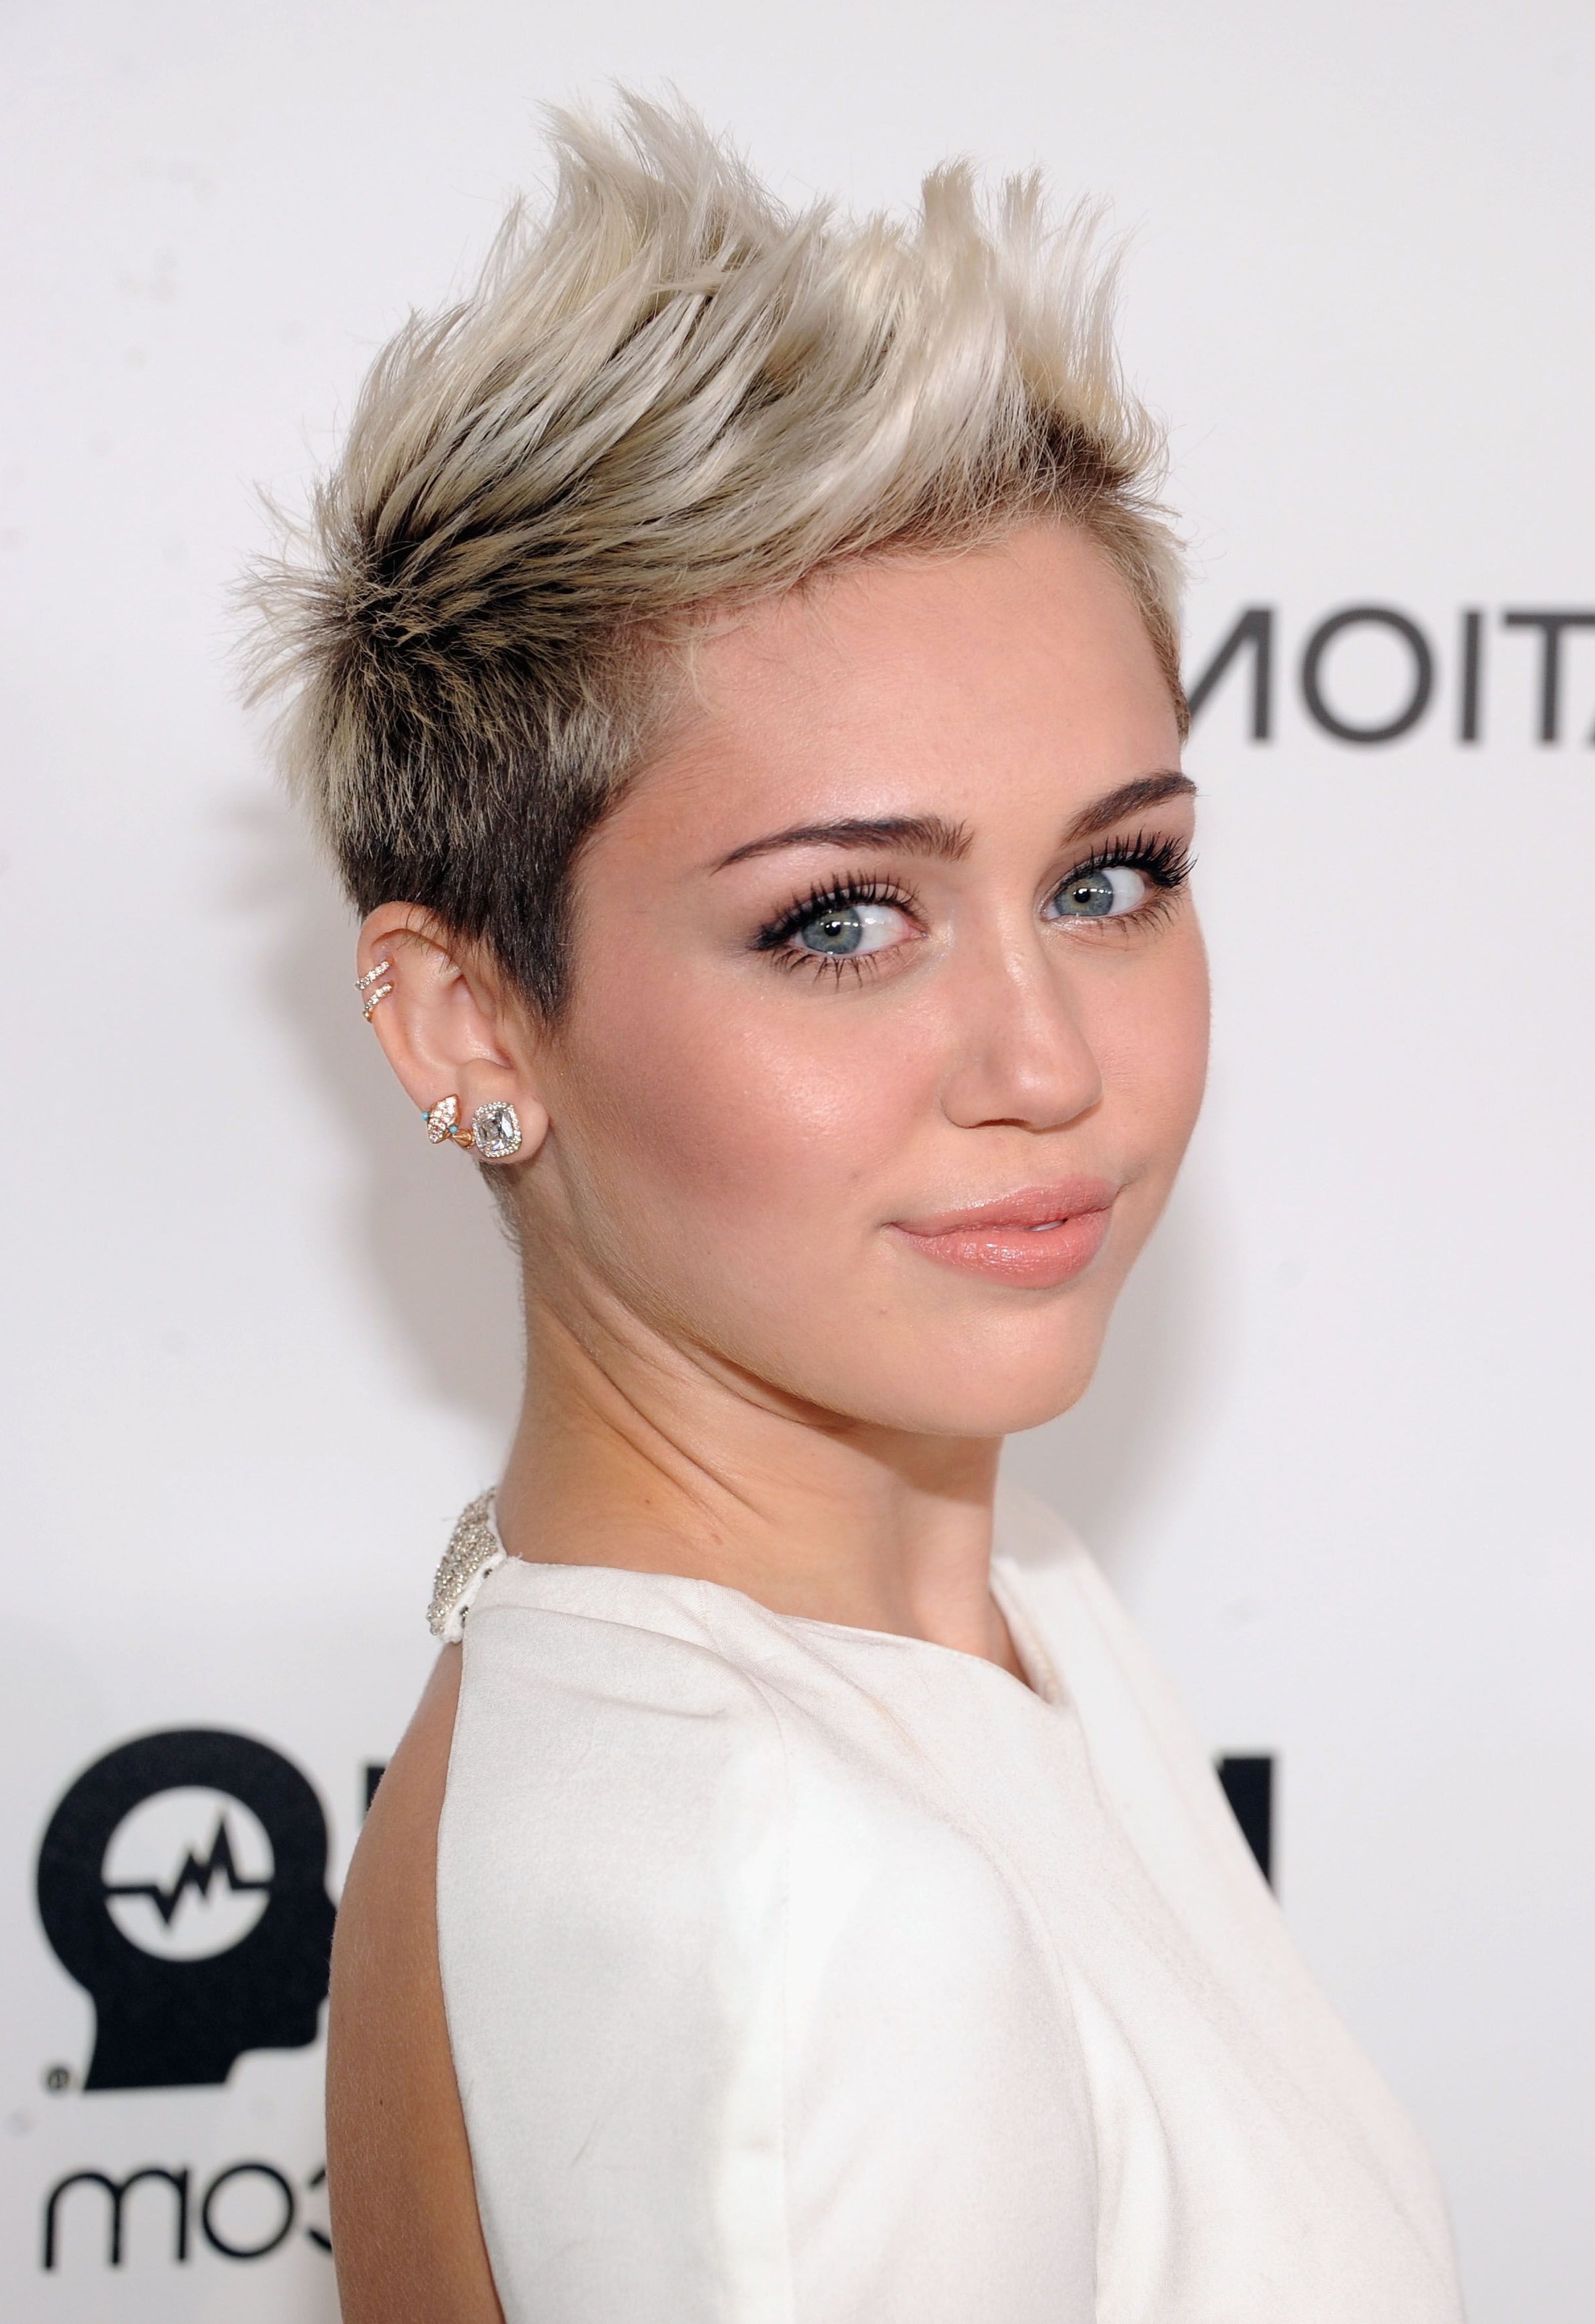 Fashionable Bleach Blonde Pixie Hairstyles Regarding 53 Best Pixie Cut Hairstyle Ideas 2018 – Cute Celebrity Pixie Haircuts (View 18 of 20)